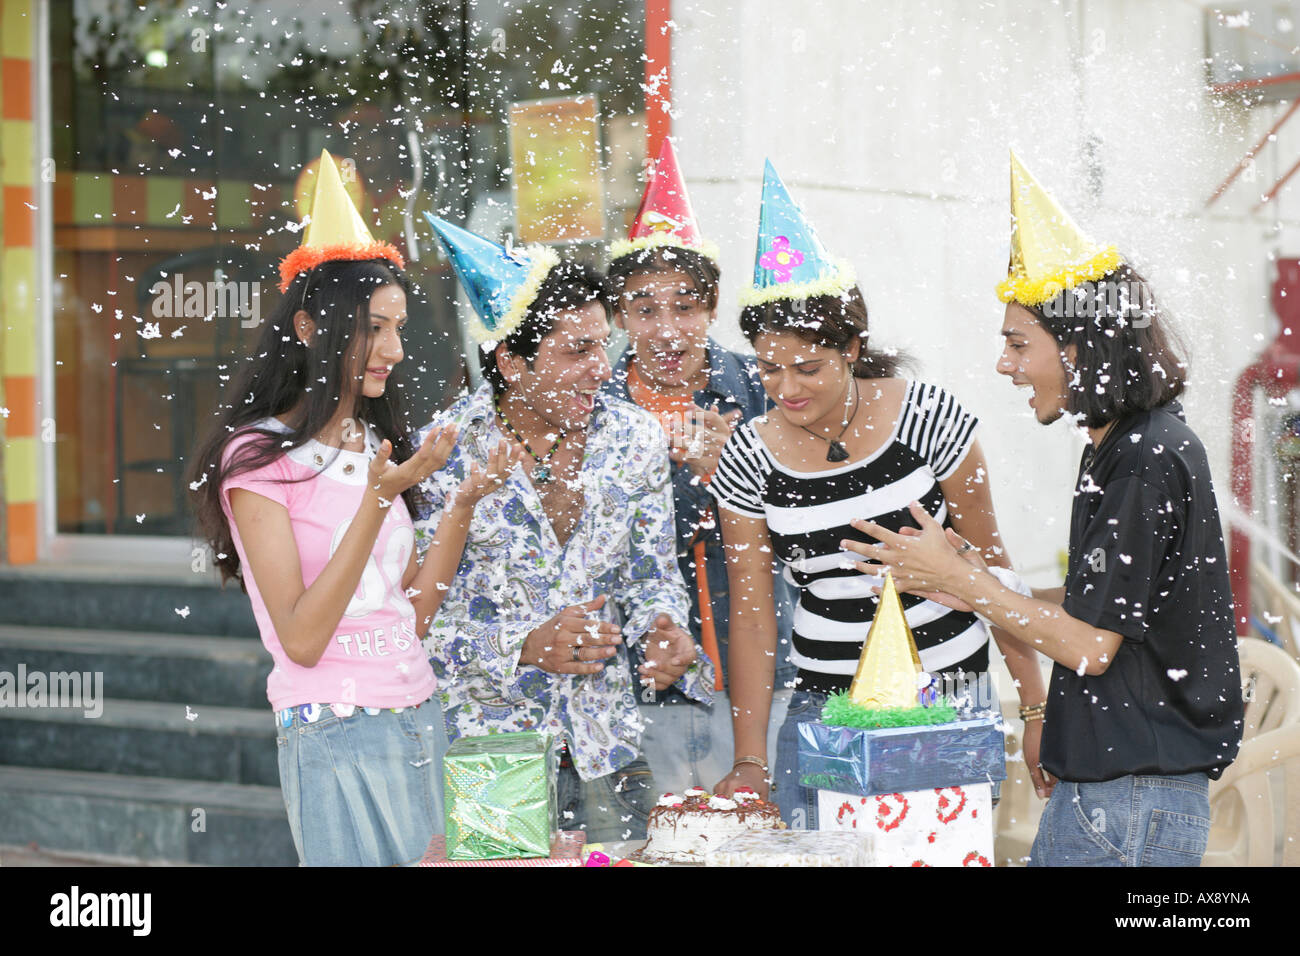 Nude young girls at birthday party